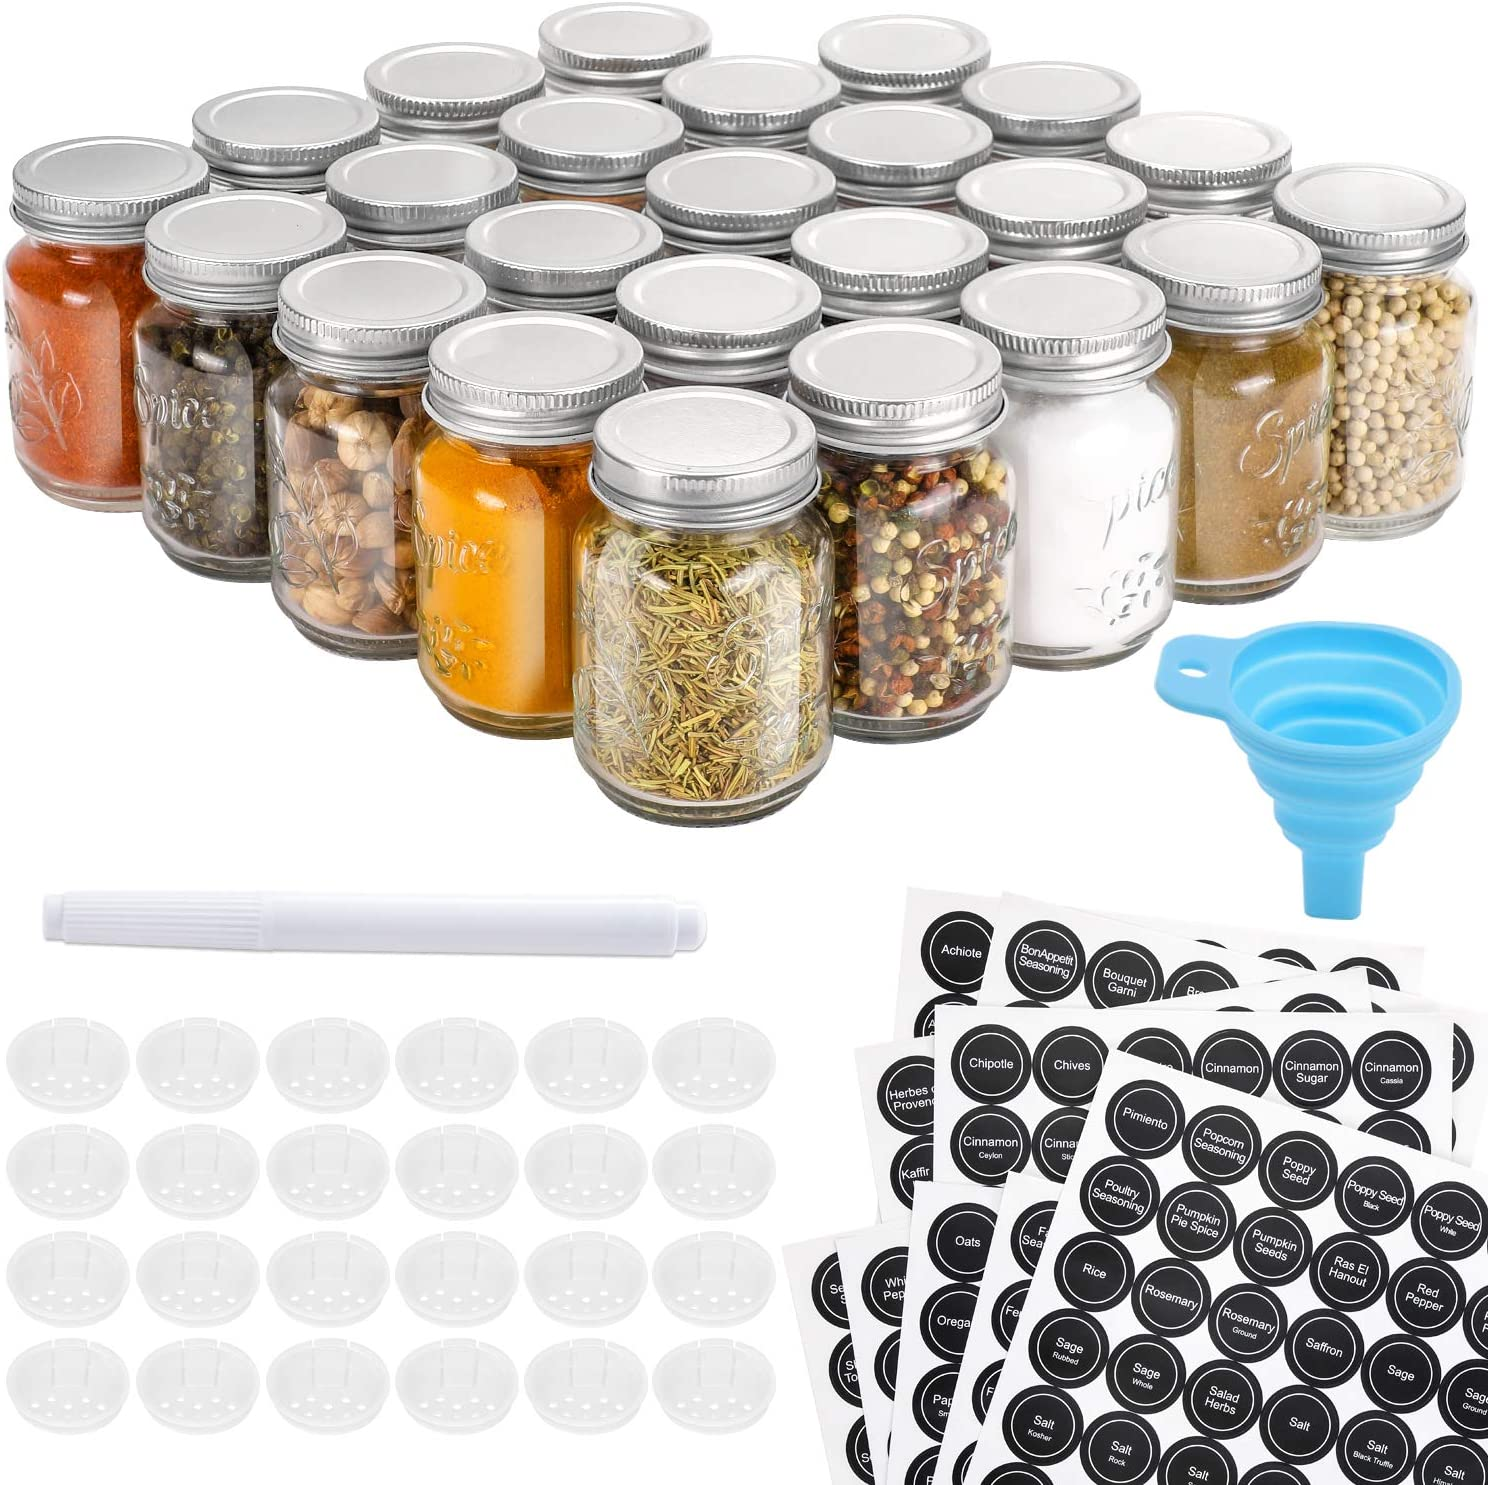 Aozita 24 Pcs Glass Mason Spice Jars/Bottles - 4oz Empty Spice Containers with Spice Labels - Shaker Lids and Airtight Metal Caps - Silicone Collapsible Funnel Included